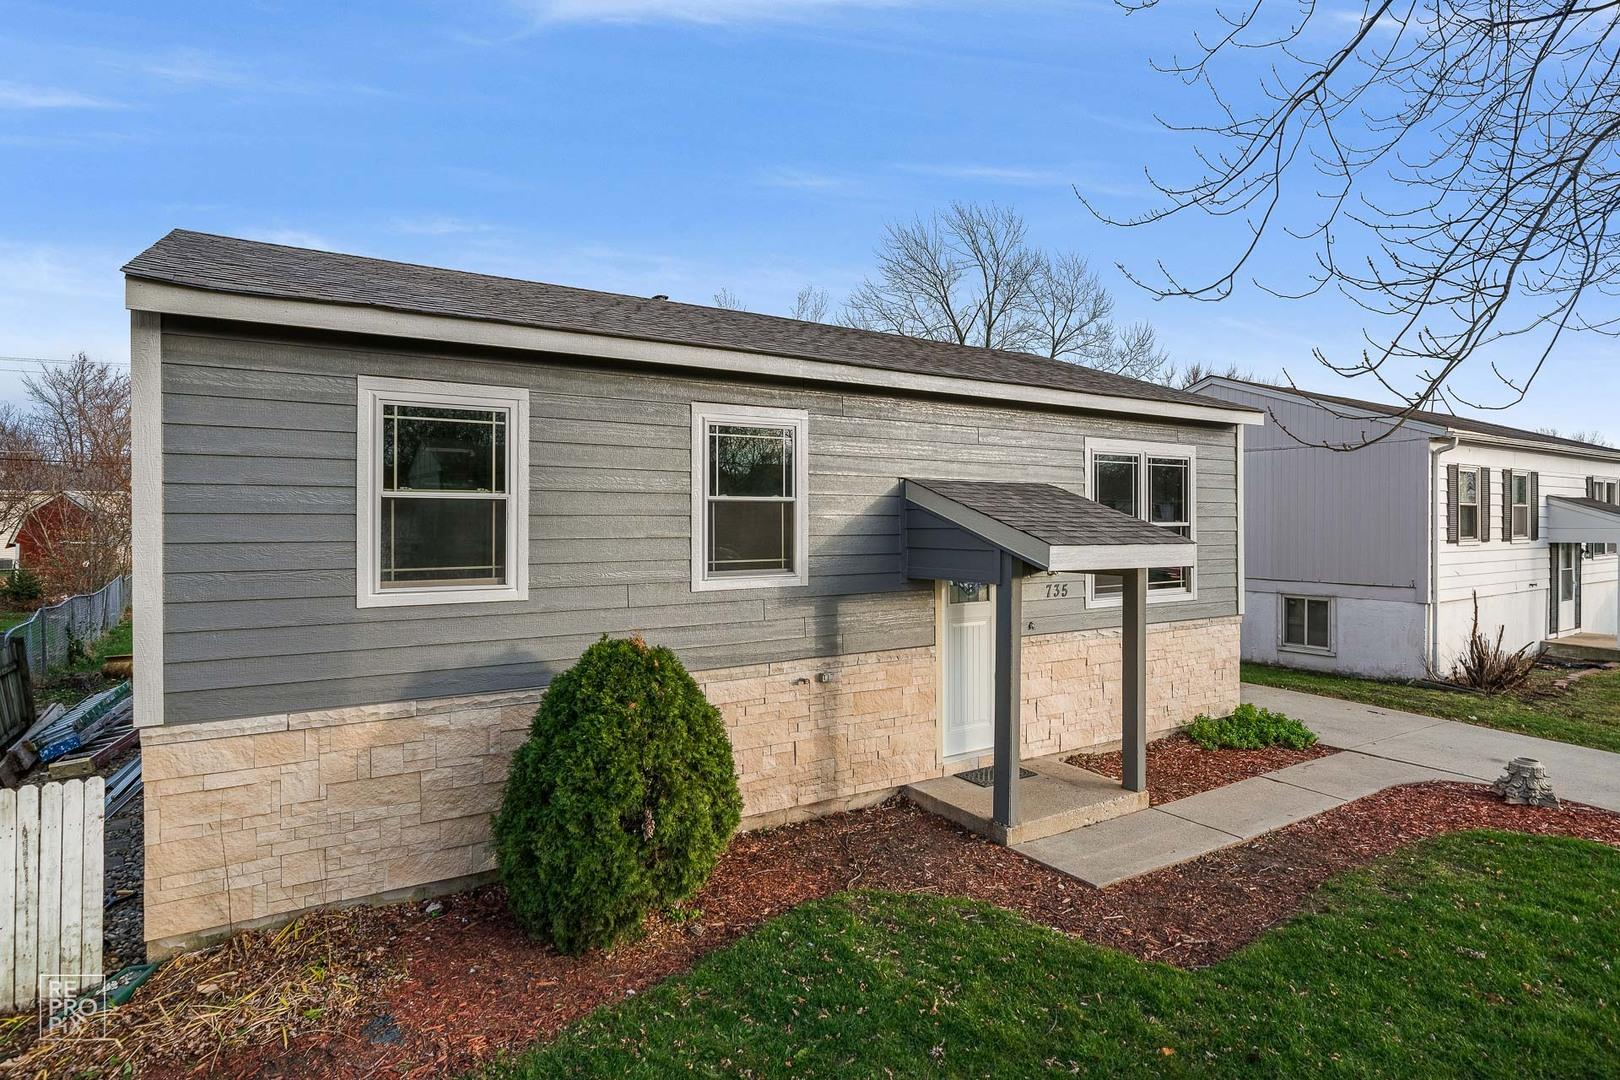 735 Parkside Avenue, West Chicago, IL 60185 - #: 10940846